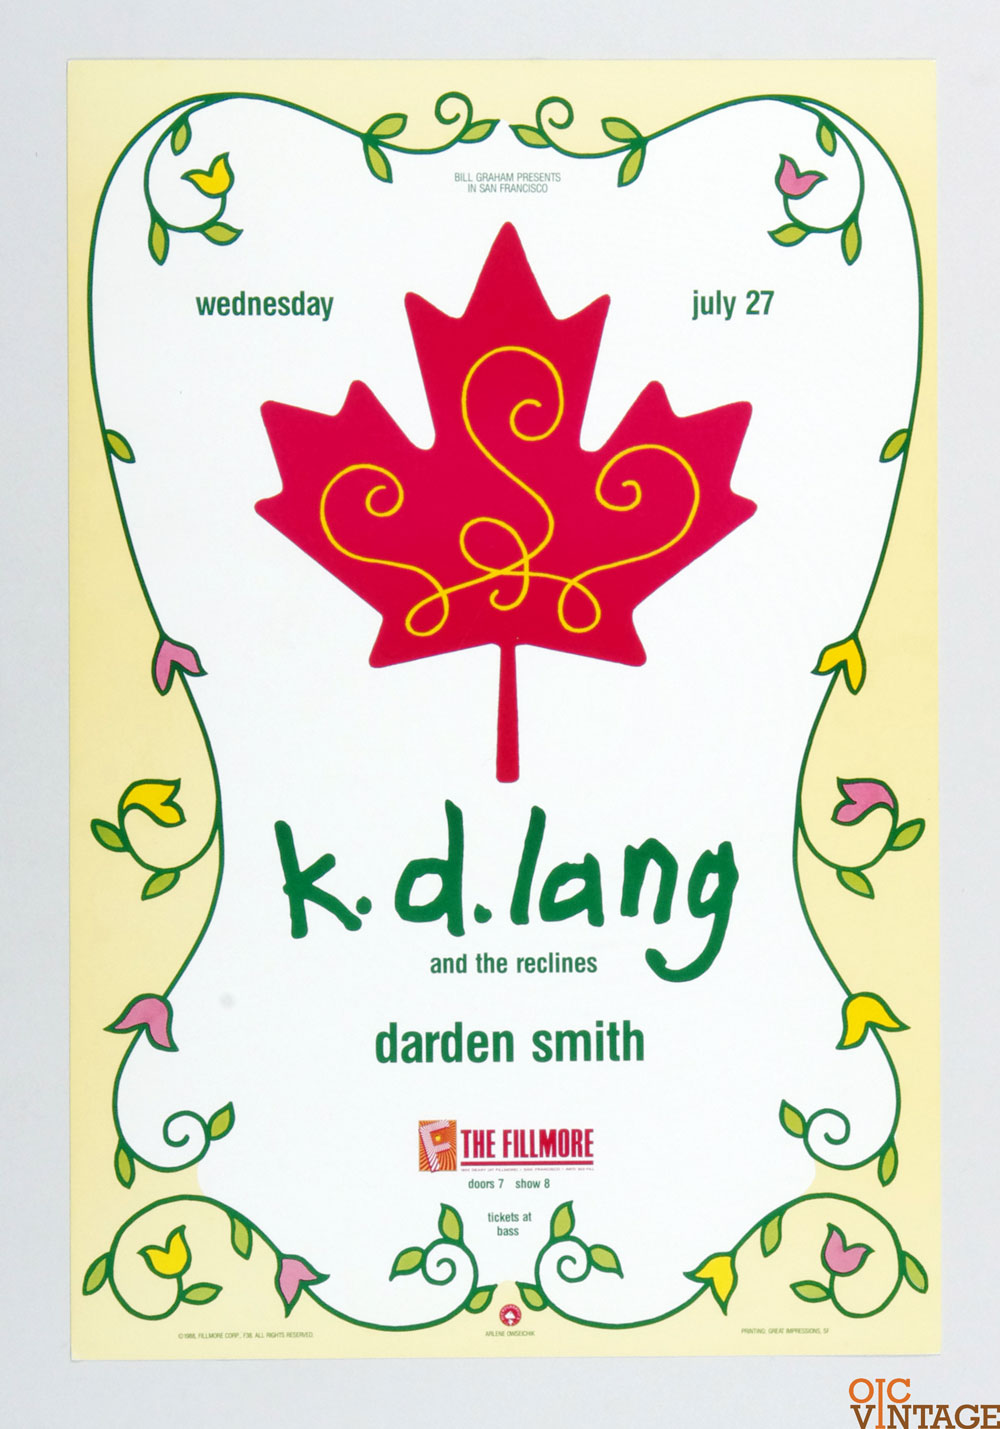 New Fillmore F38 Poster K. D. Lang and the Recliners Darden Smith 1988 Jul 27